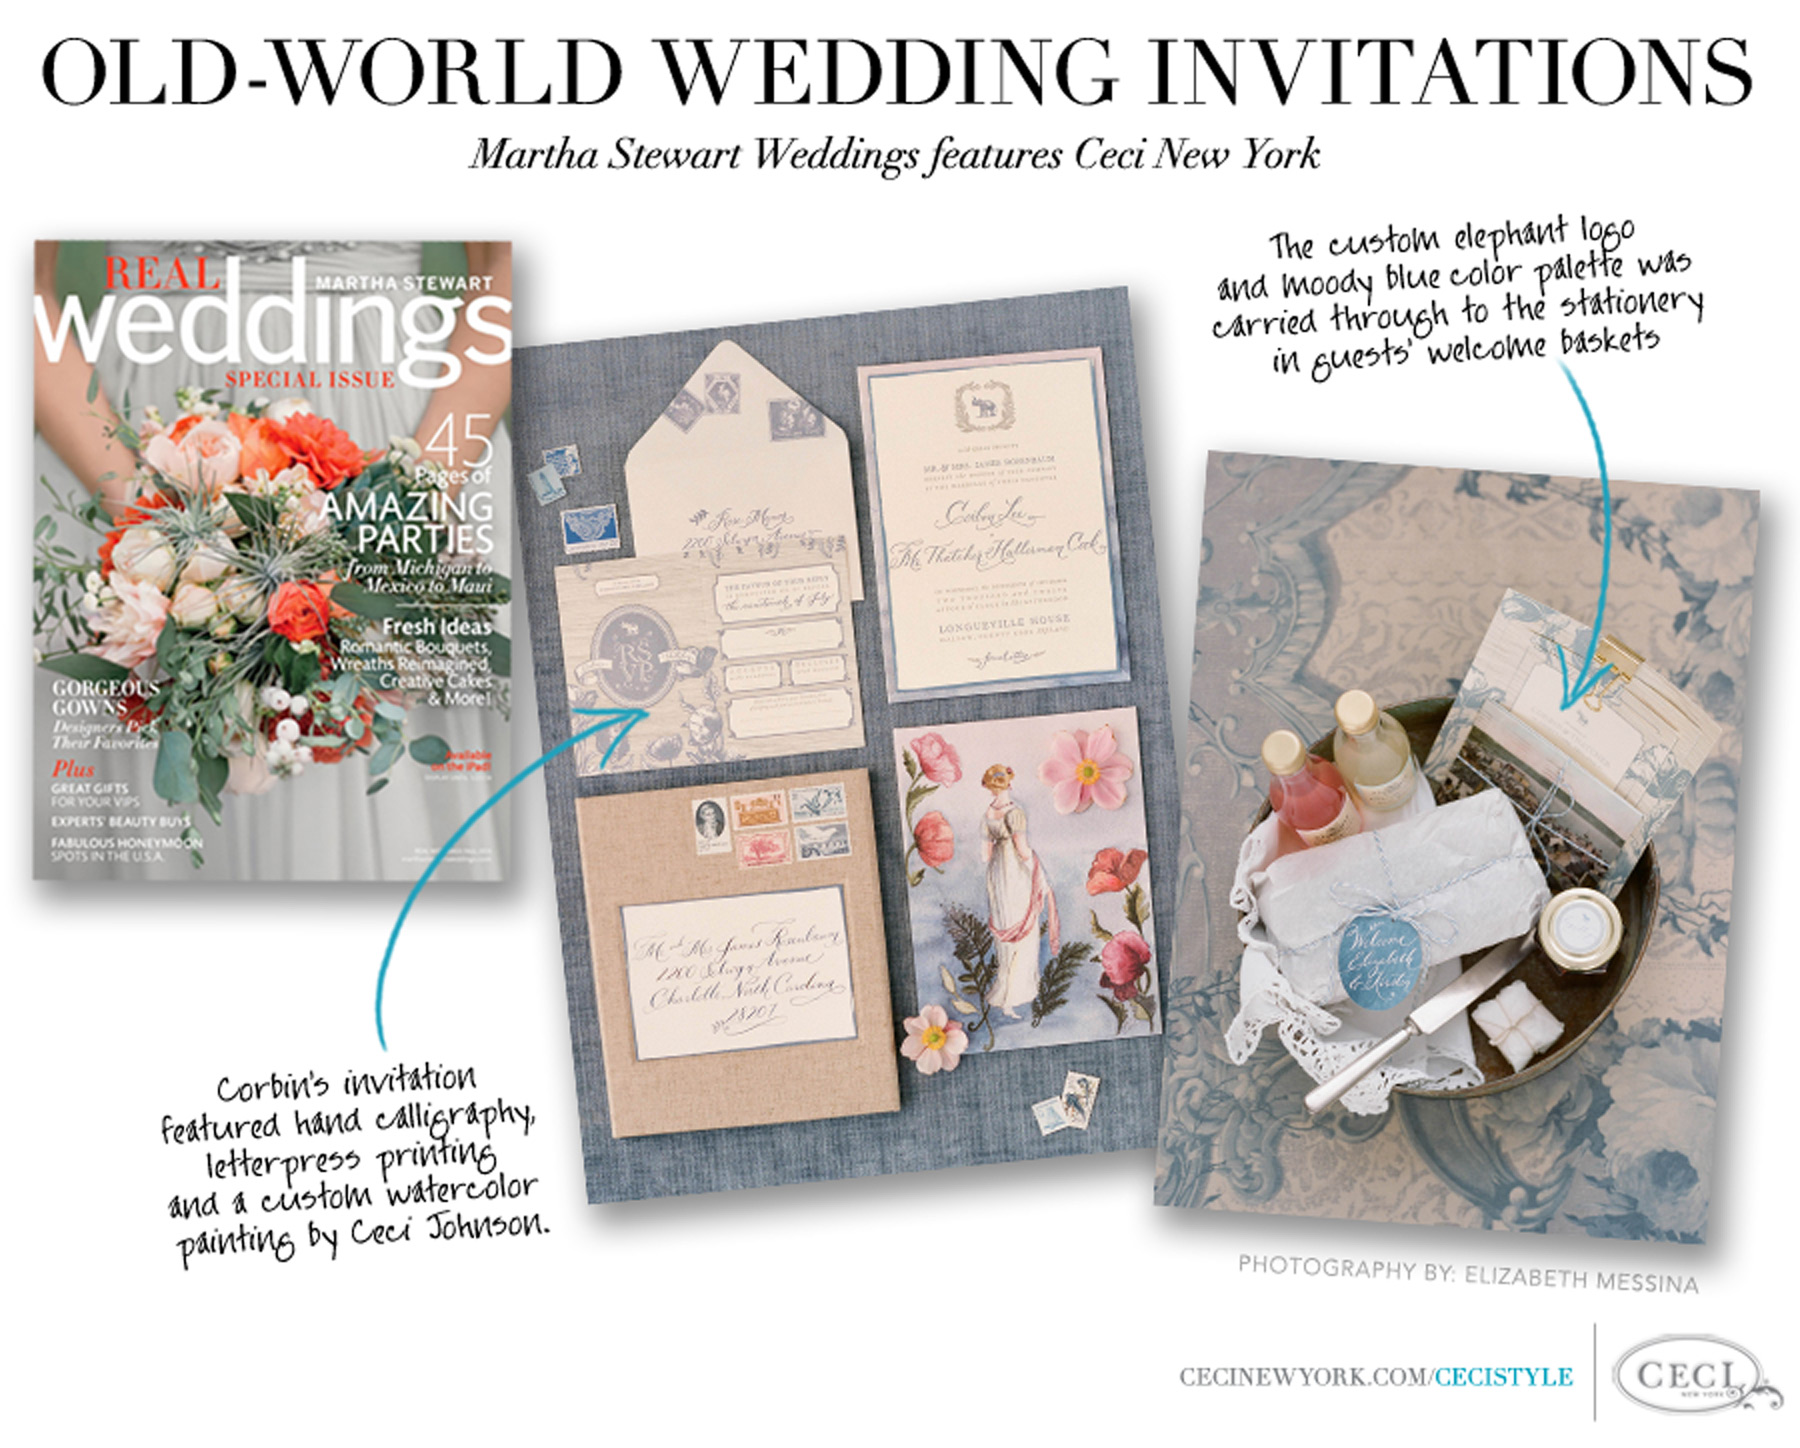 Old-World Wedding Invitations - Martha Stewart Weddings features Ceci New York